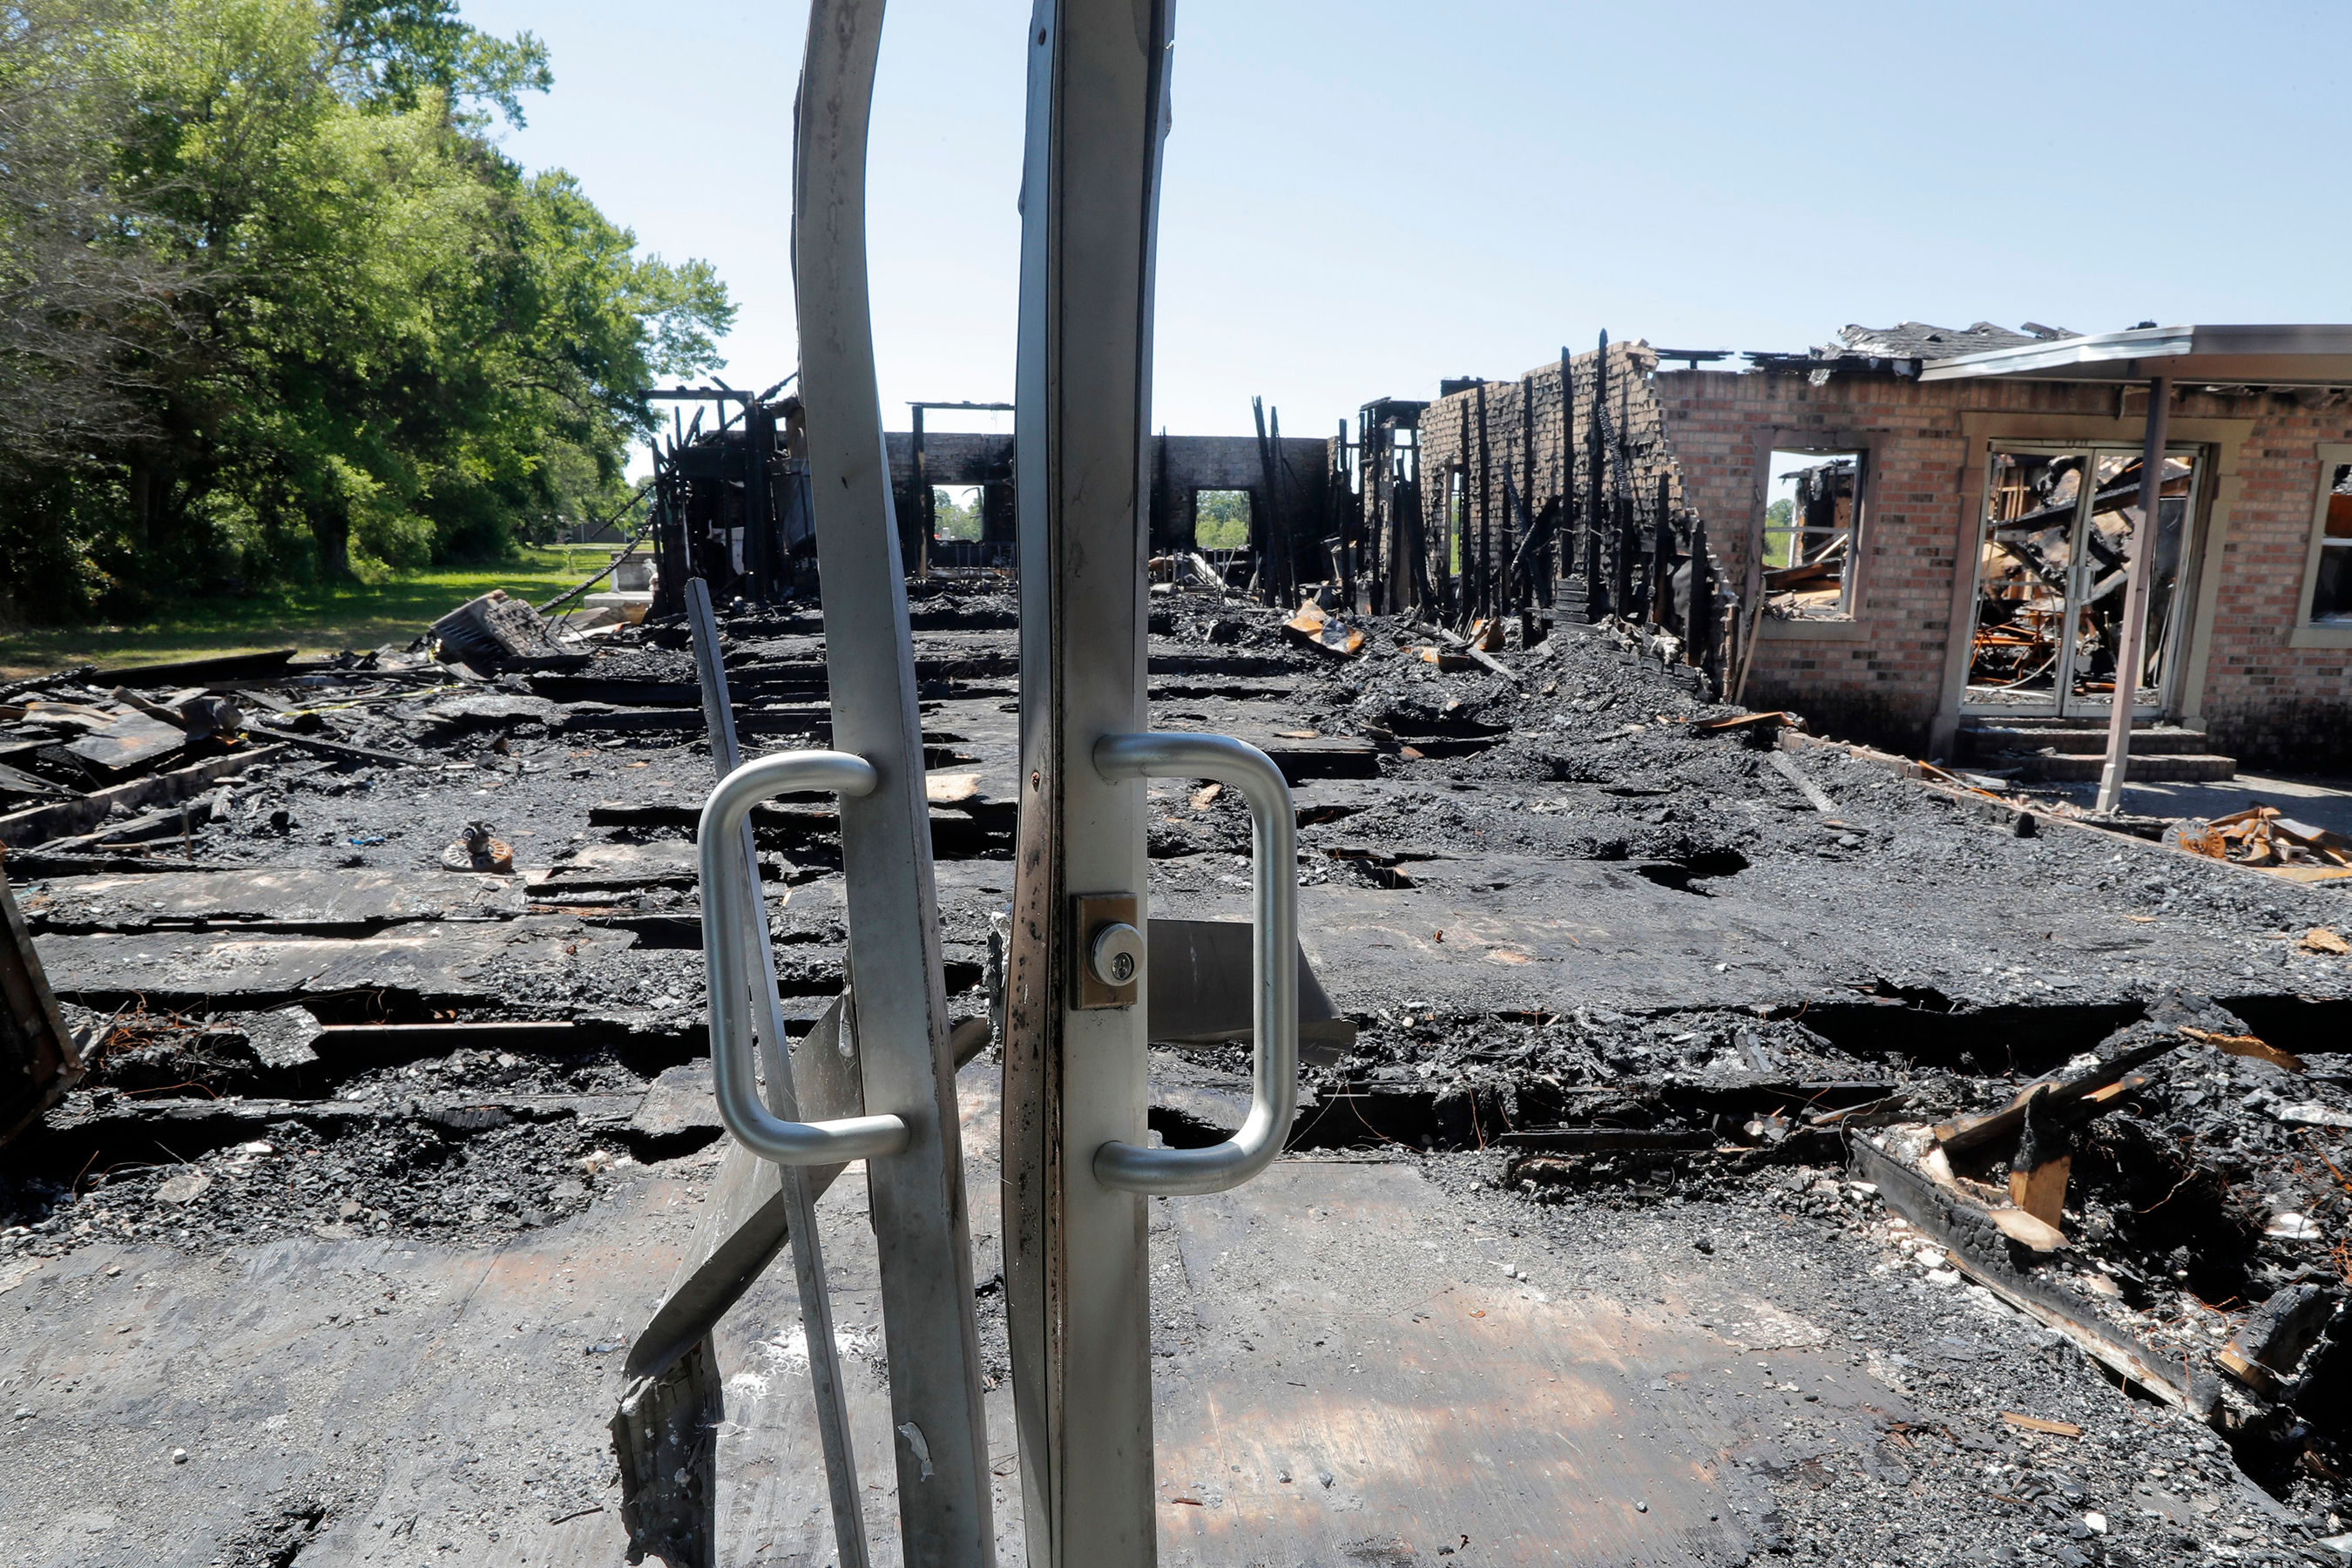 Thousands Donate to Rebuild Burned Louisiana Churches Amid Notre Dame Fundraising Efforts